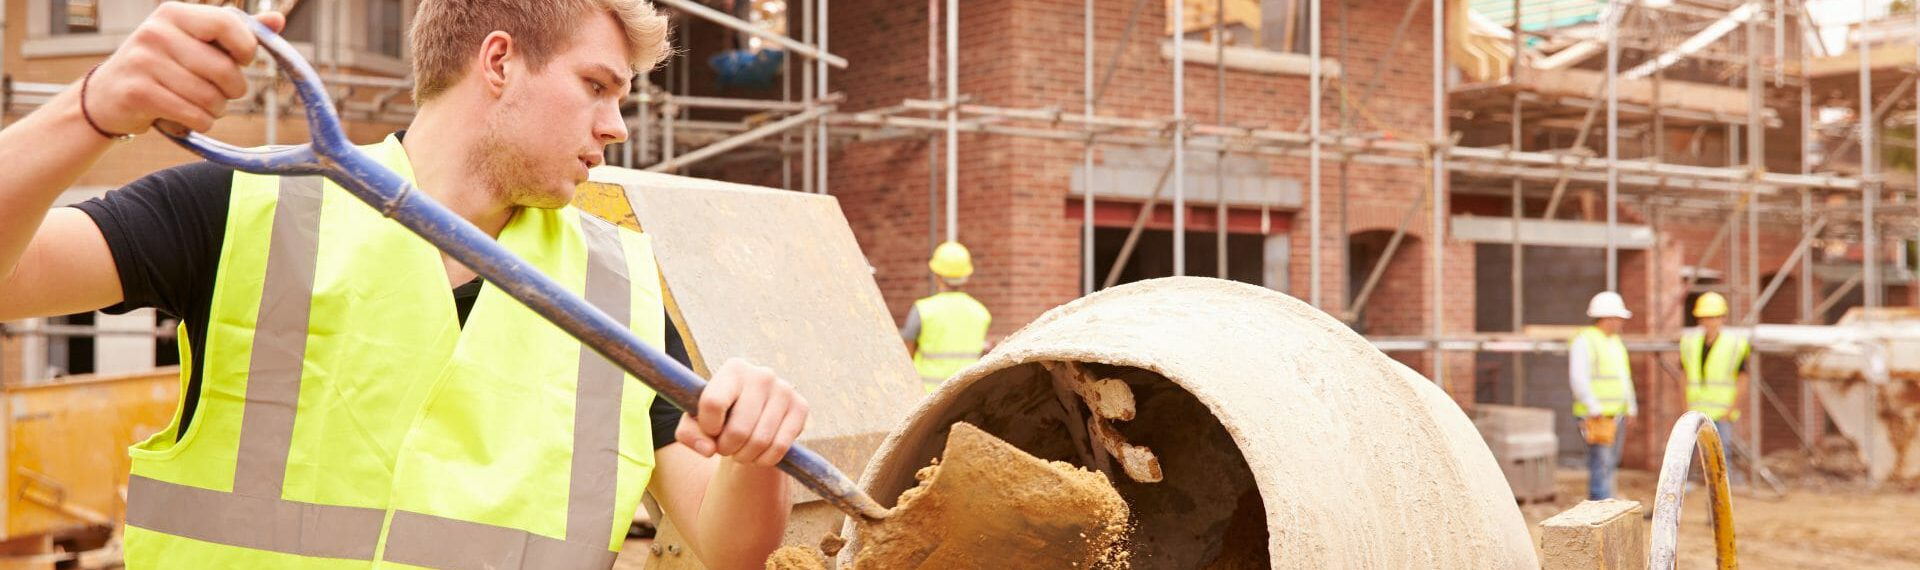 building contract using cement mixer on building site